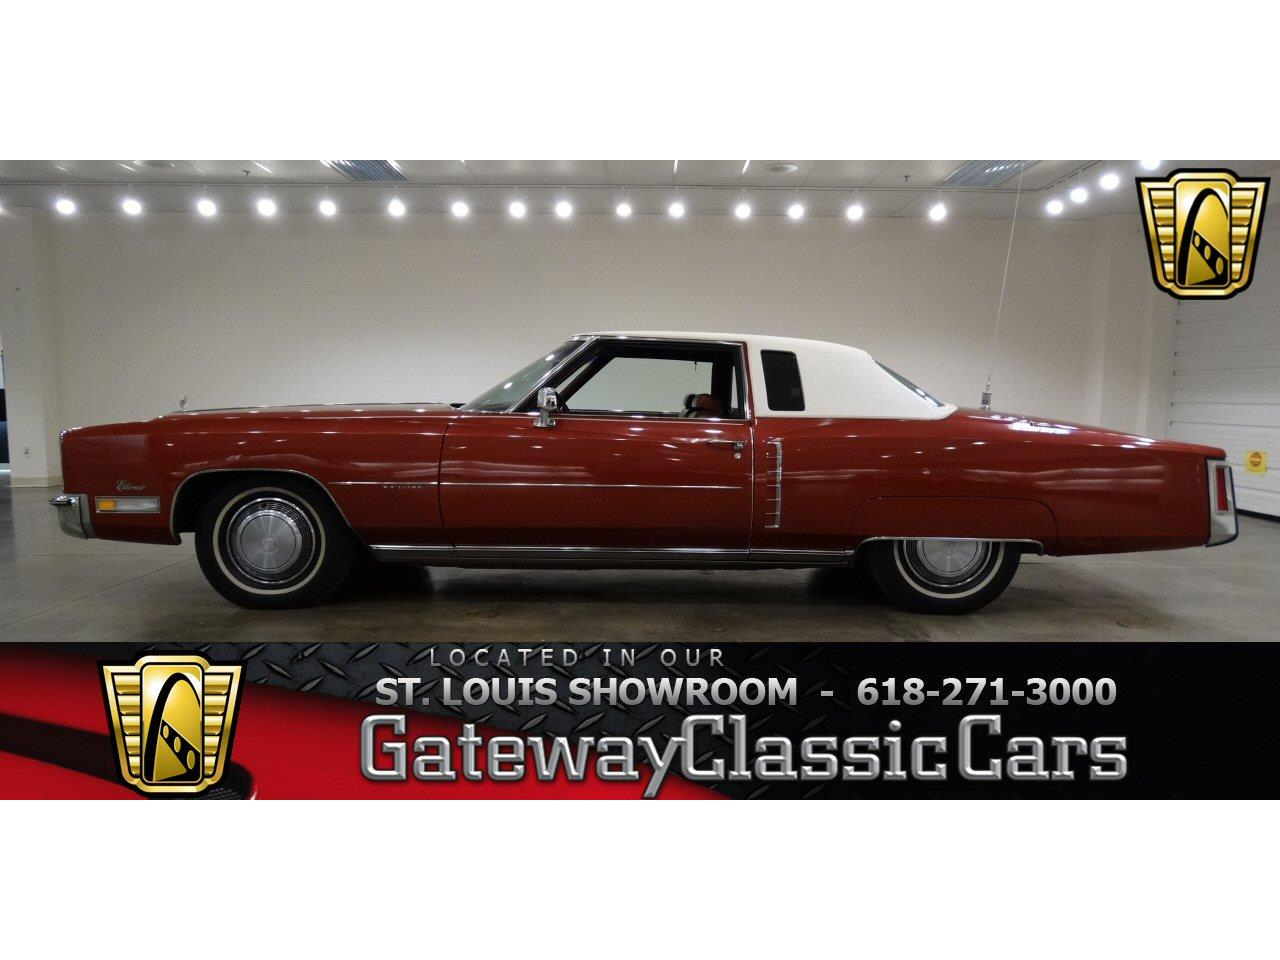 Large Picture of Classic '72 Cadillac Eldorado located in O'Fallon Illinois - $10,595.00 Offered by Gateway Classic Cars - St. Louis - KDKB